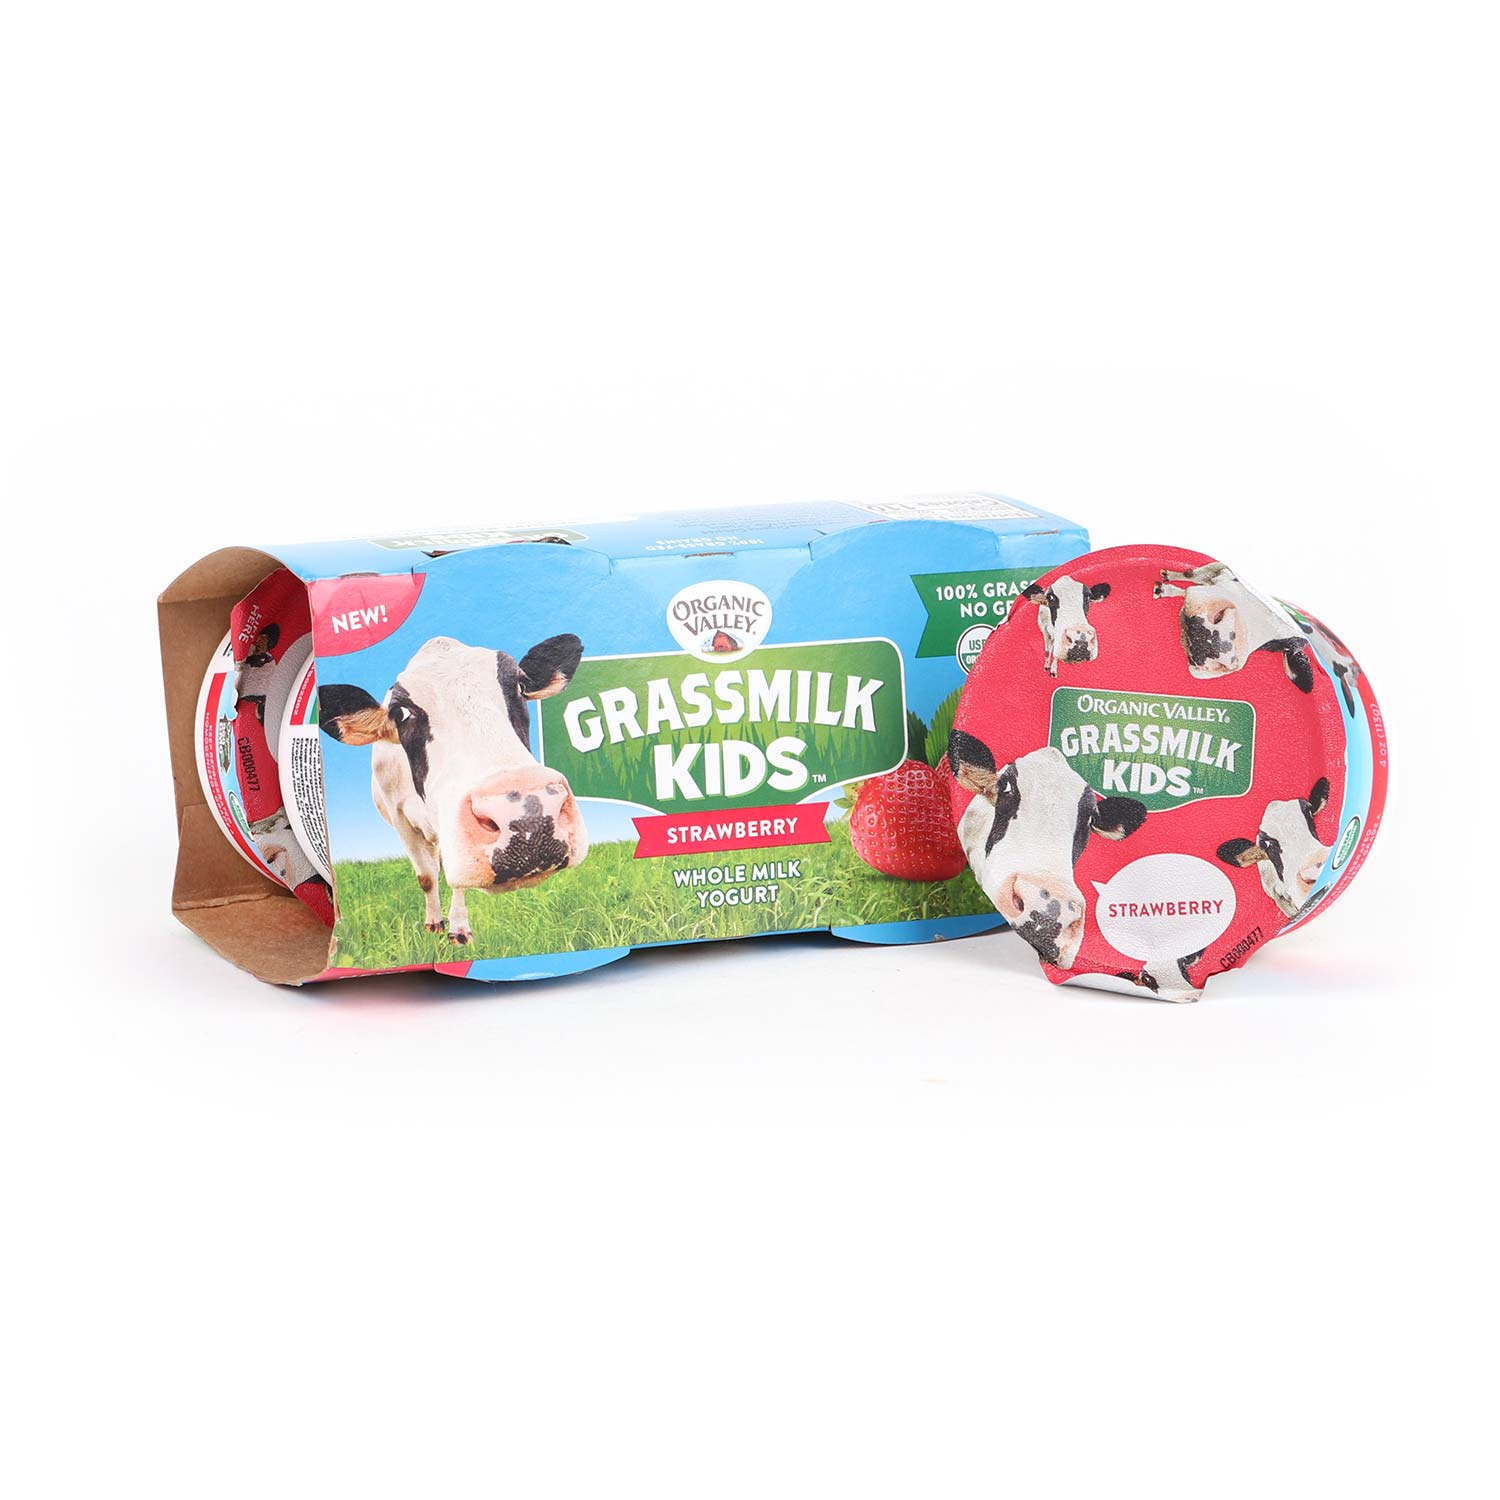 Yogurt, Cups, Grassmilk Kids Strawberry-Organic